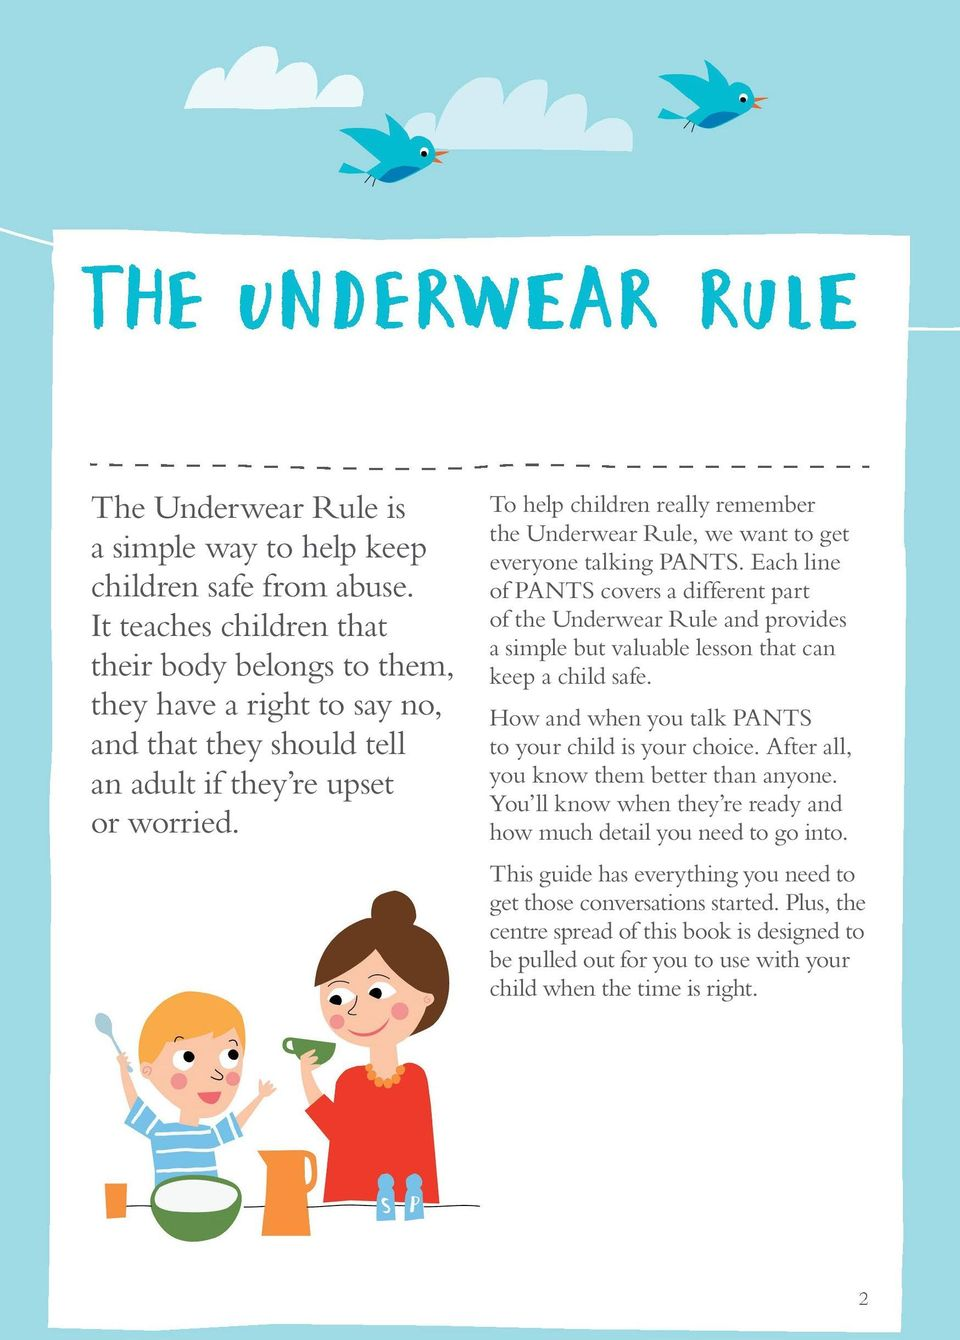 To help children really remember the Underwear Rule, we want to get everyone talking PANTS.